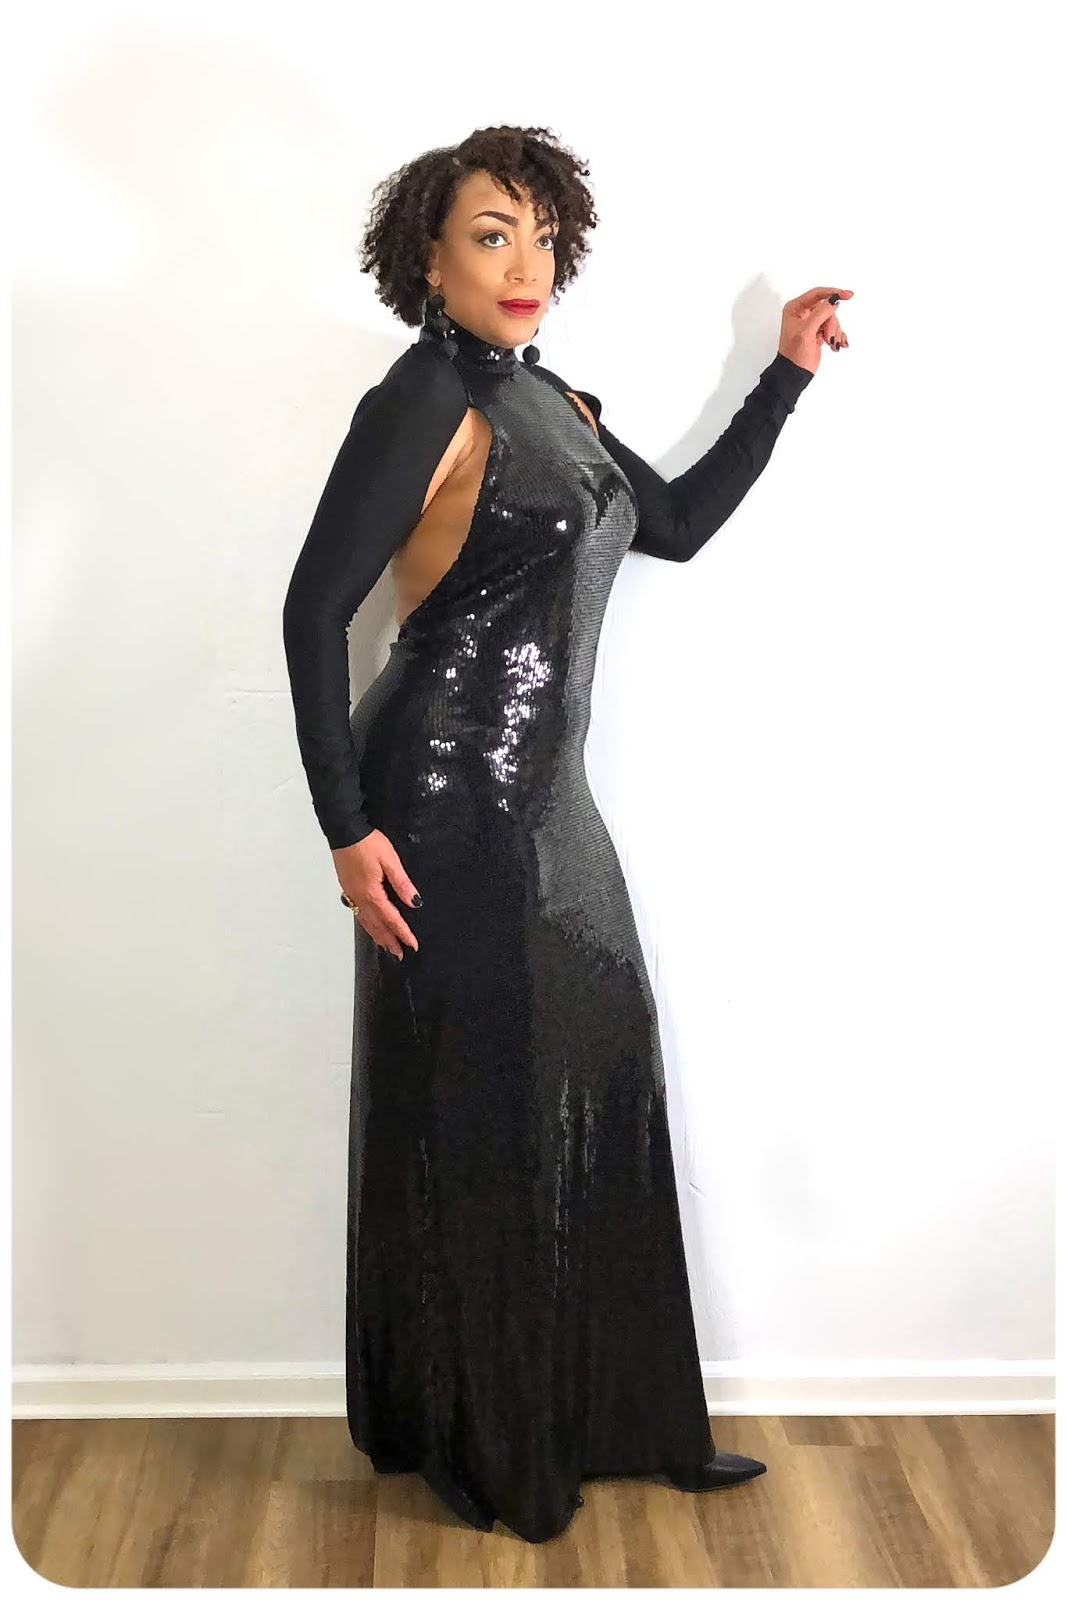 Vintage Vogue 2230 - Full-Length Black Sequin Gown - Erica Bunker DIY Style!